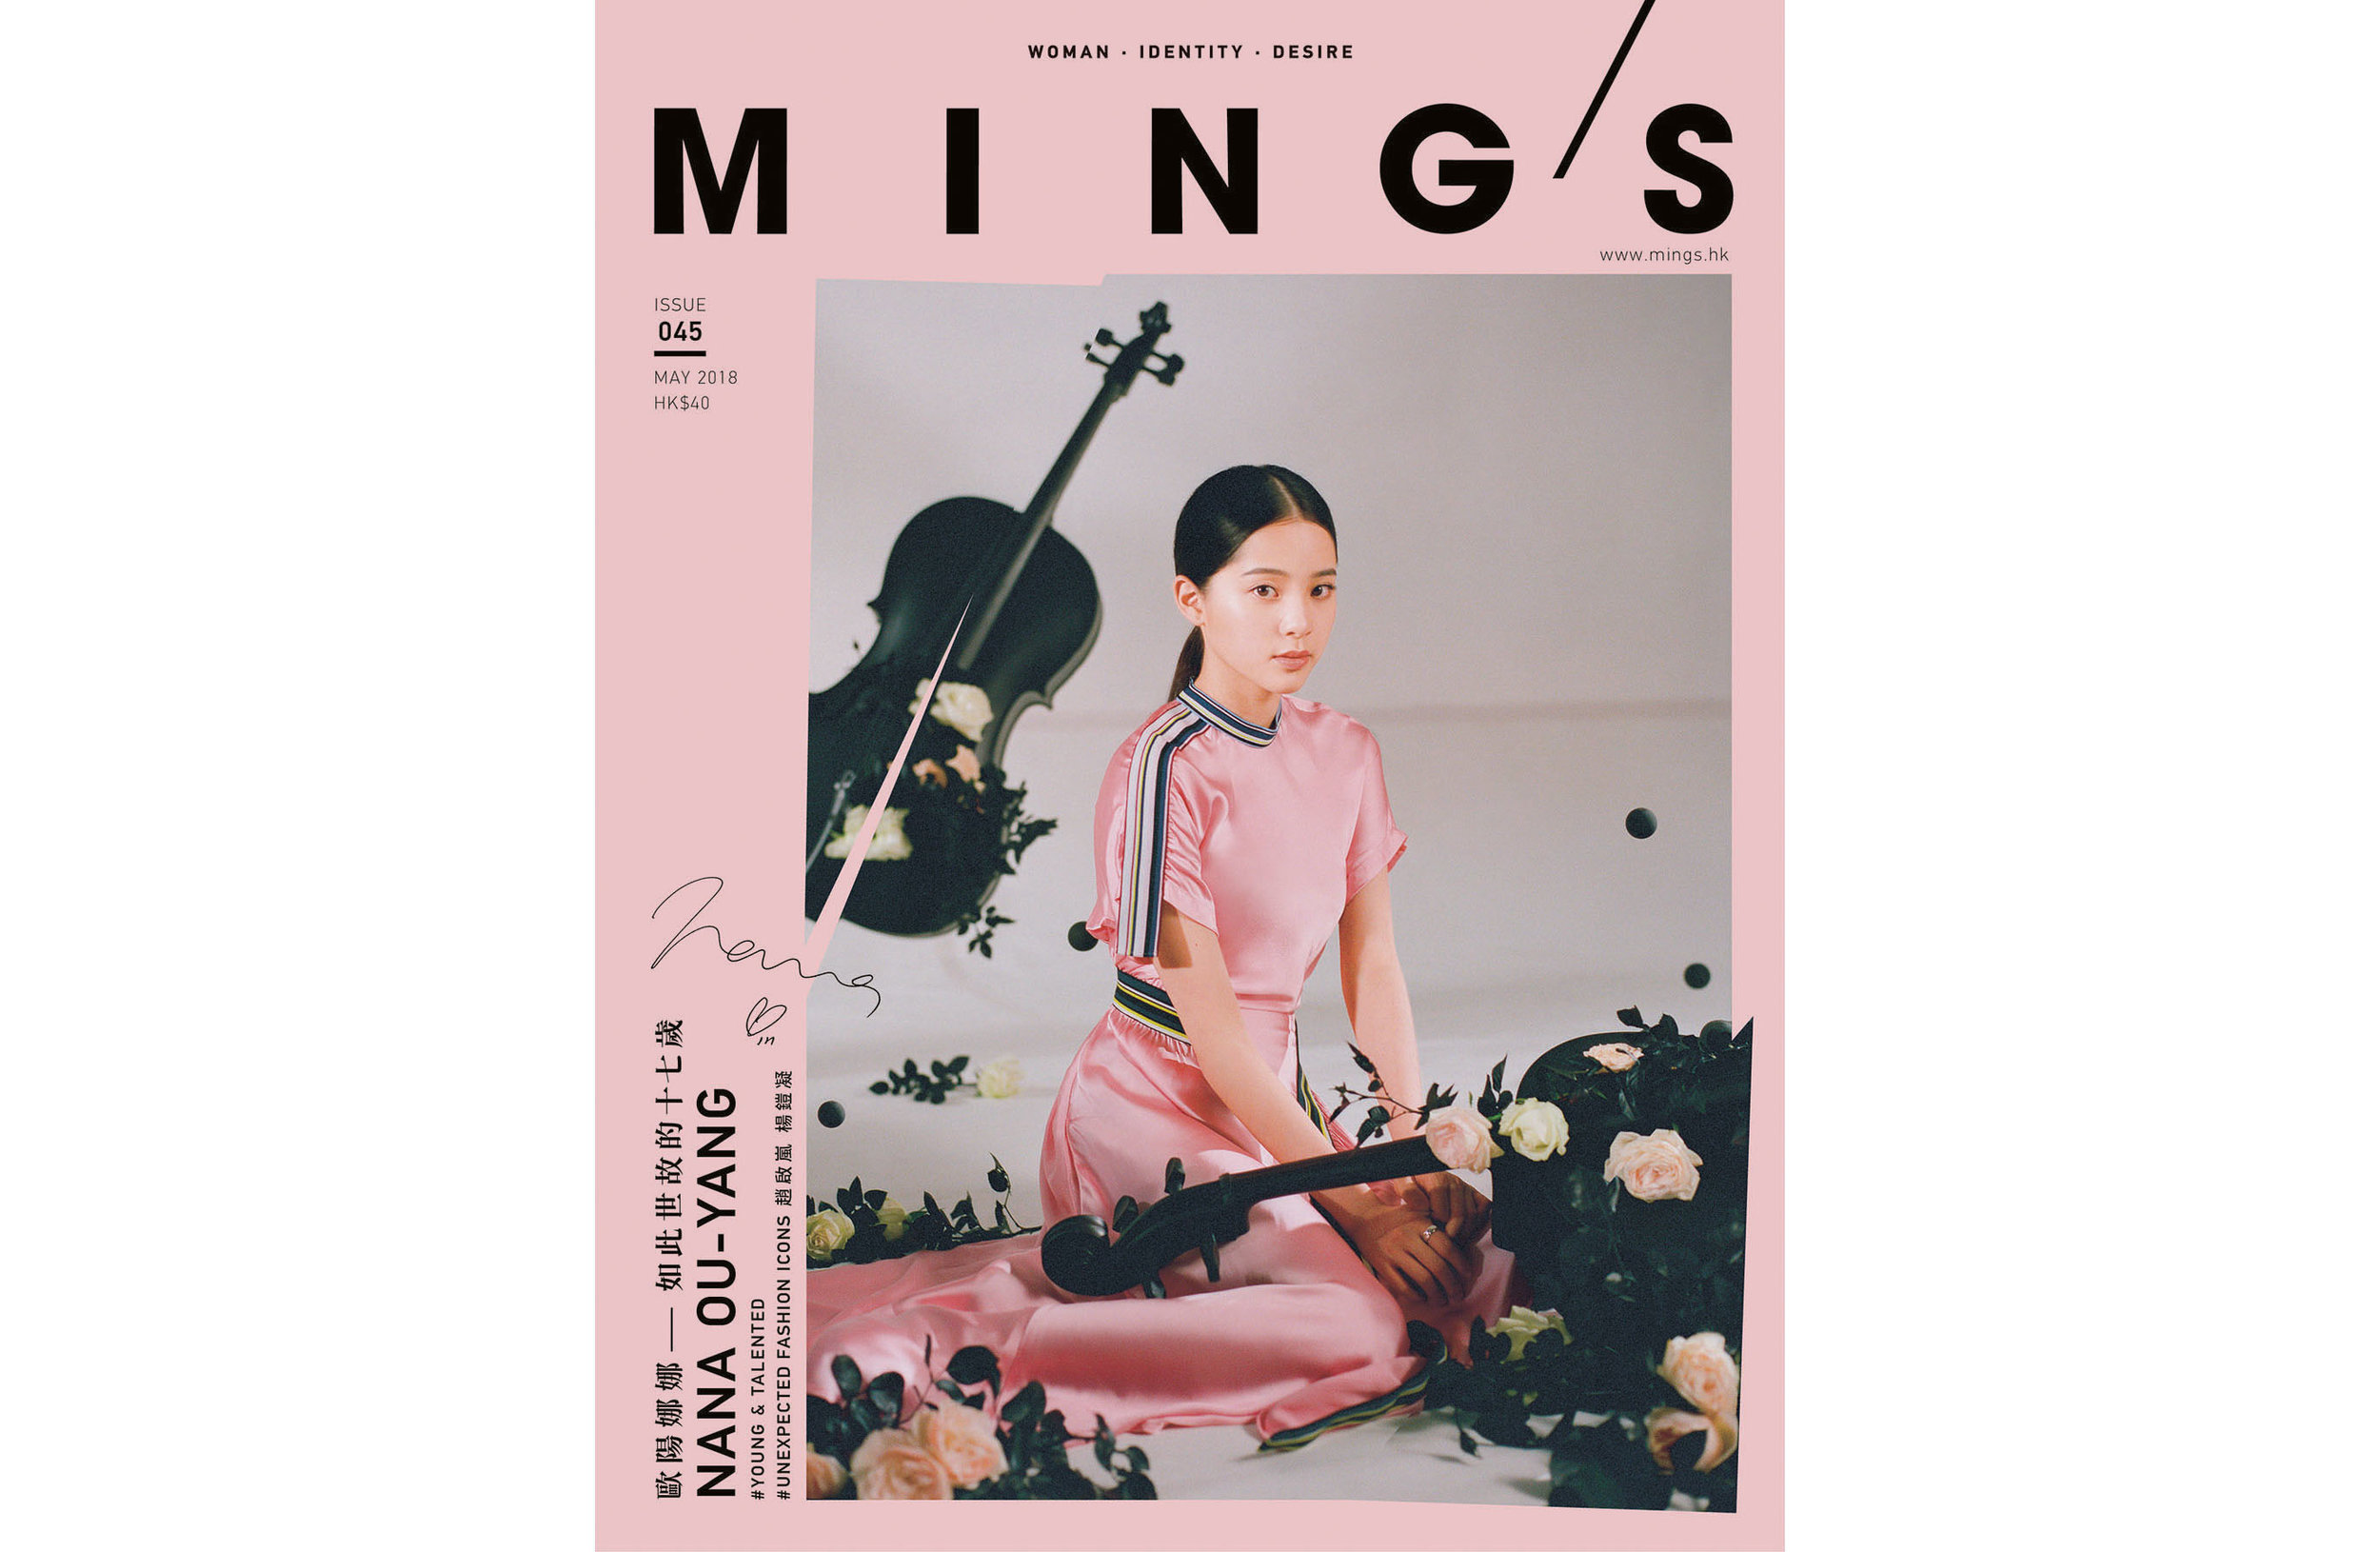 000_mings45_covers2 - small copy.jpg